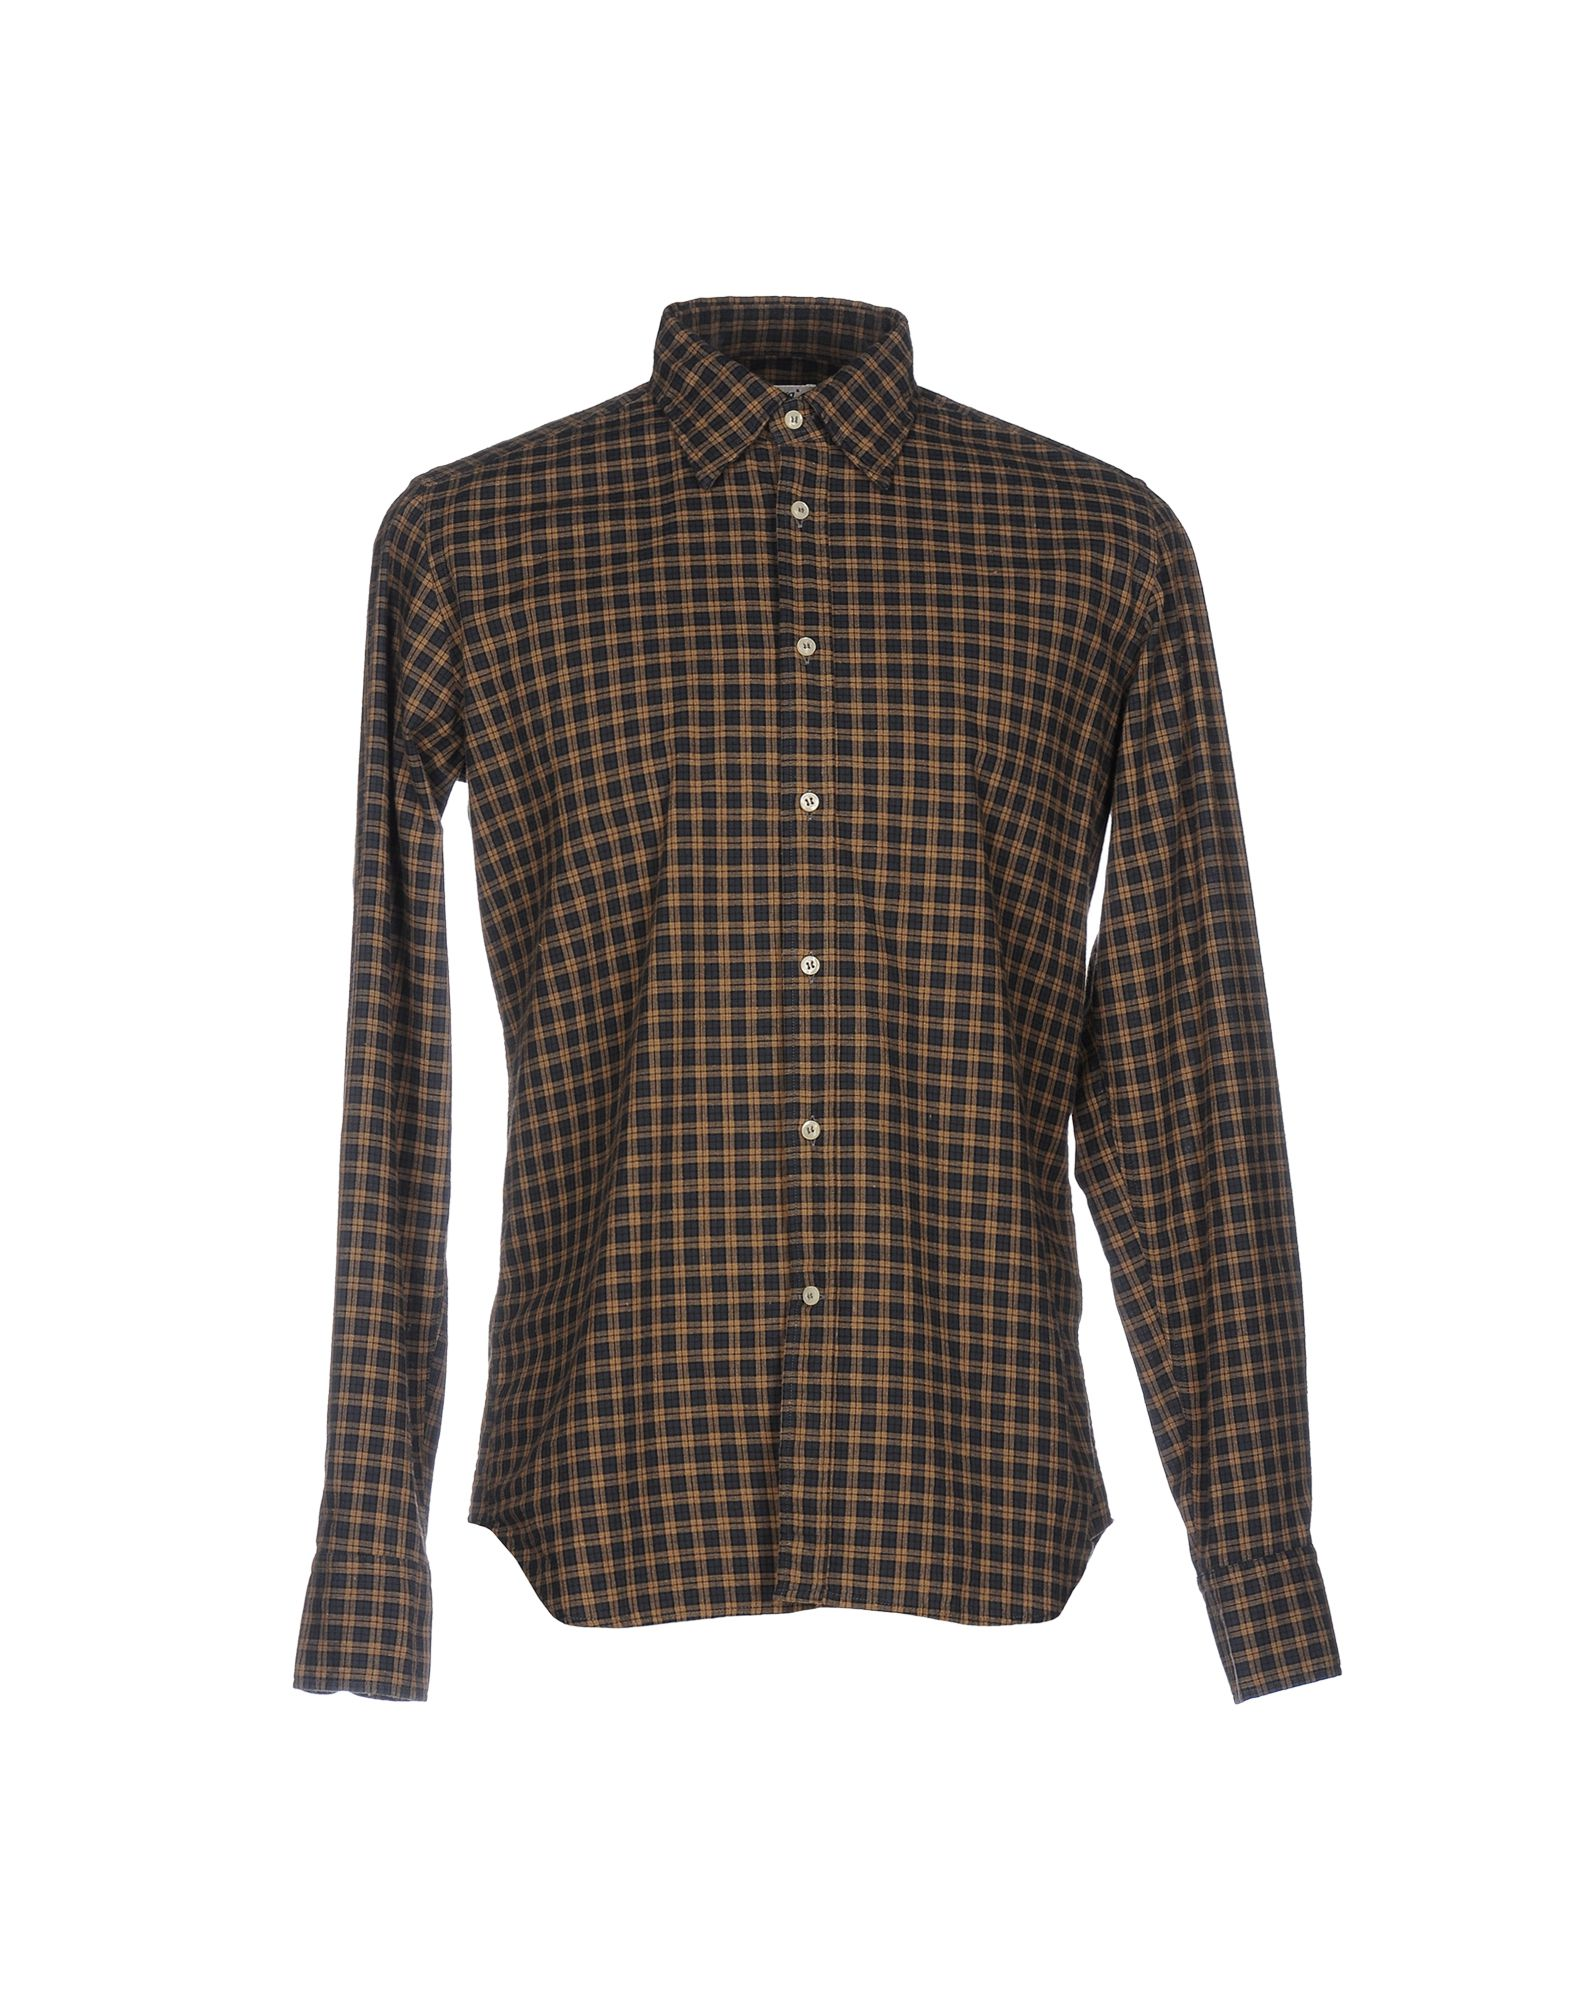 BEVILACQUA Checked Shirt in Khaki